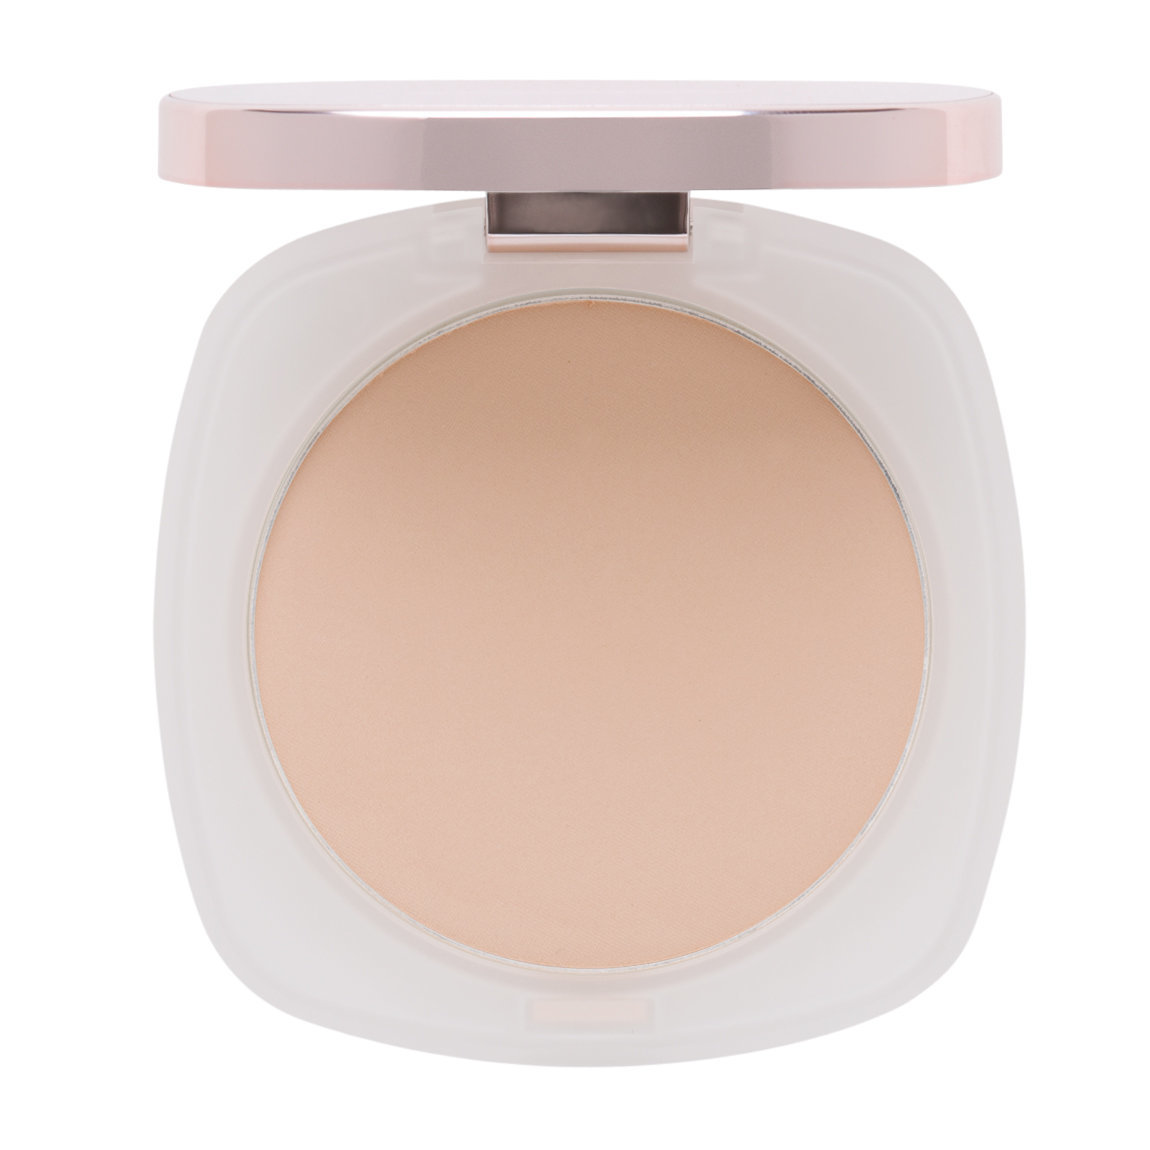 La Mer The Sheer Pressed Powder Light alternative view 1 - product swatch.